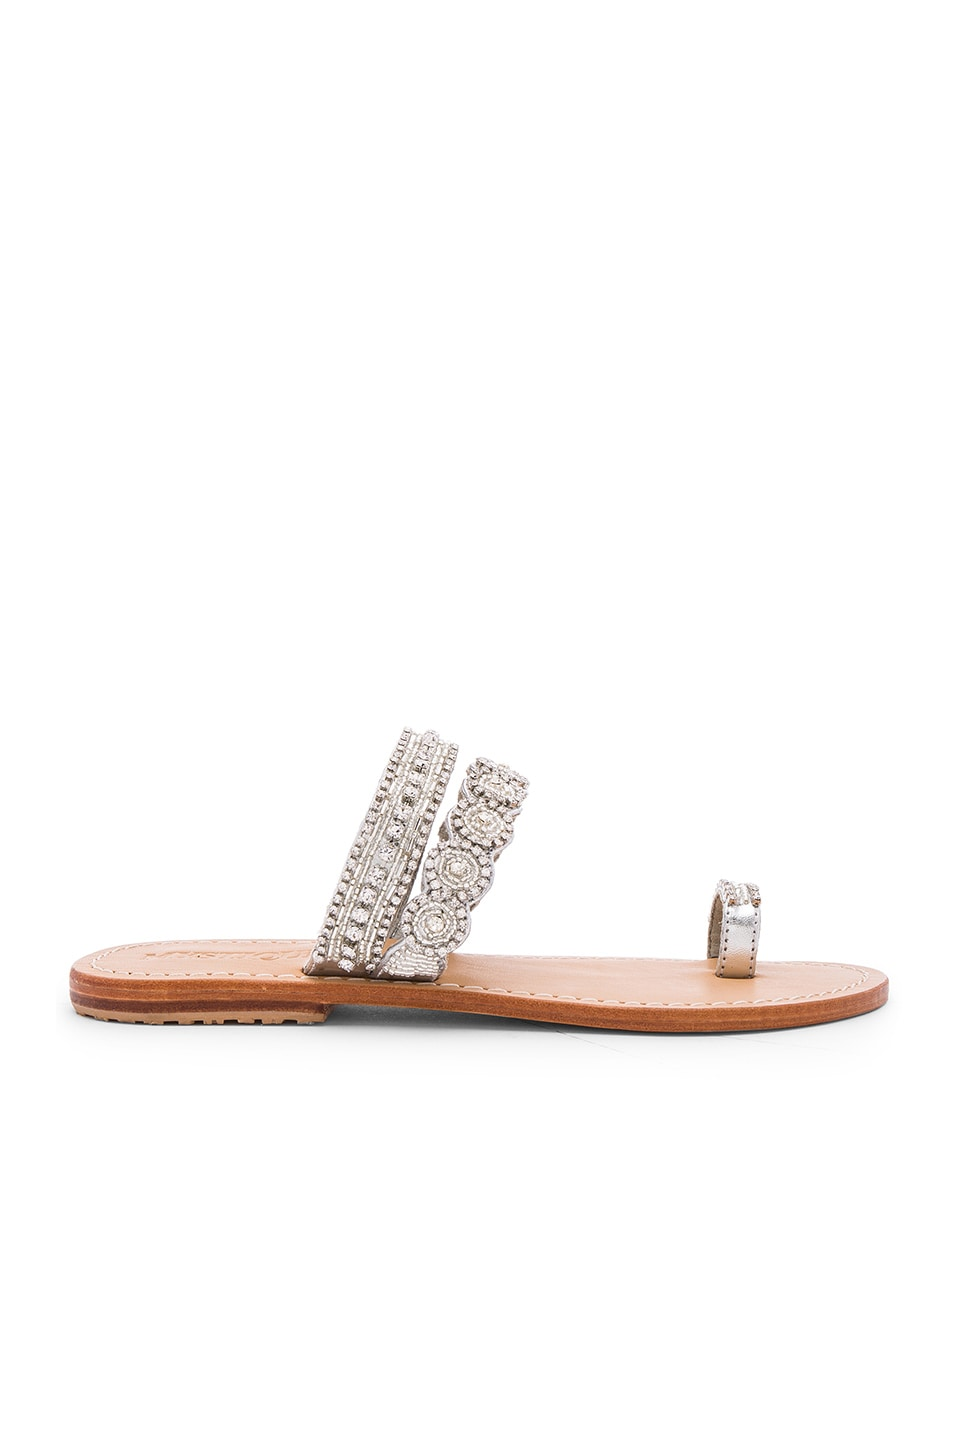 Mystique Slide Sandals in Silver & Clear